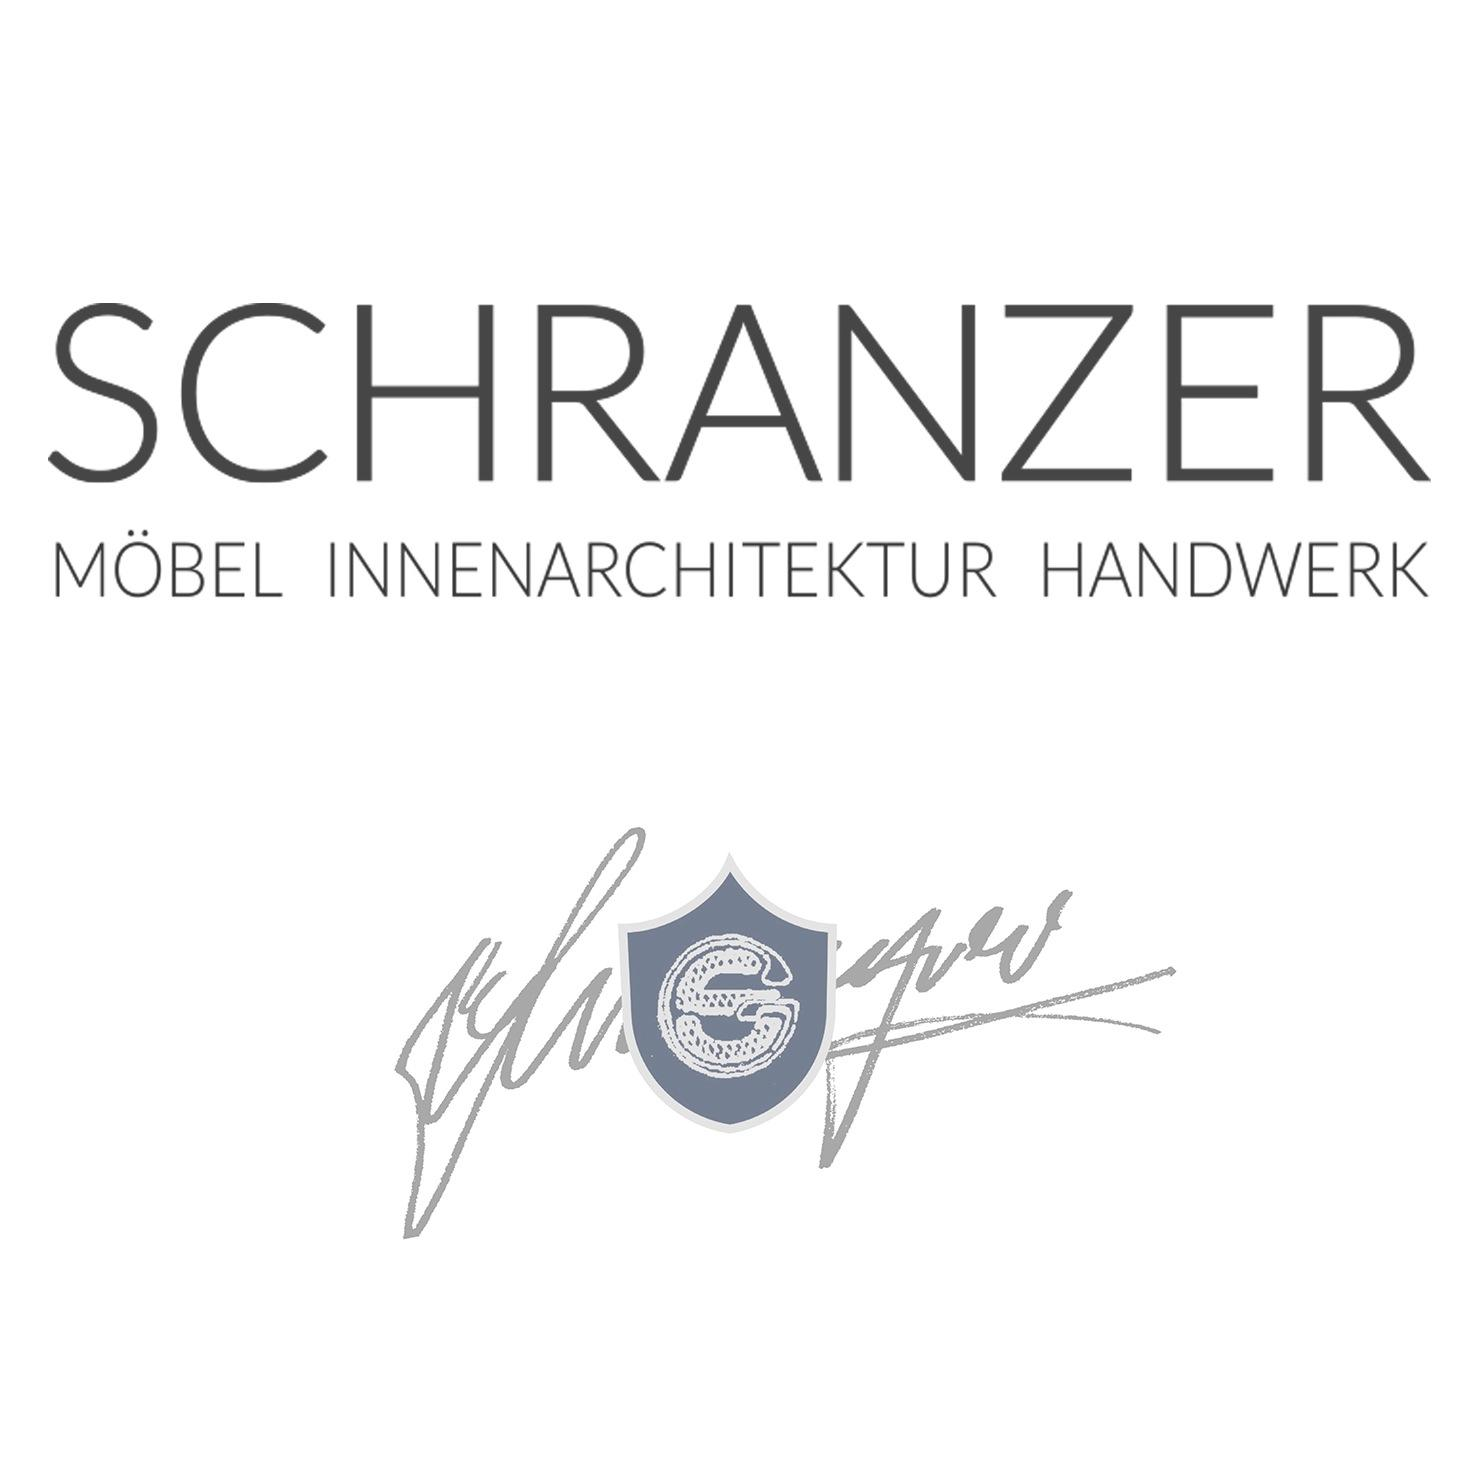 Schranzer m bel innenarchitektur handwerk for Innenarchitektur informationen